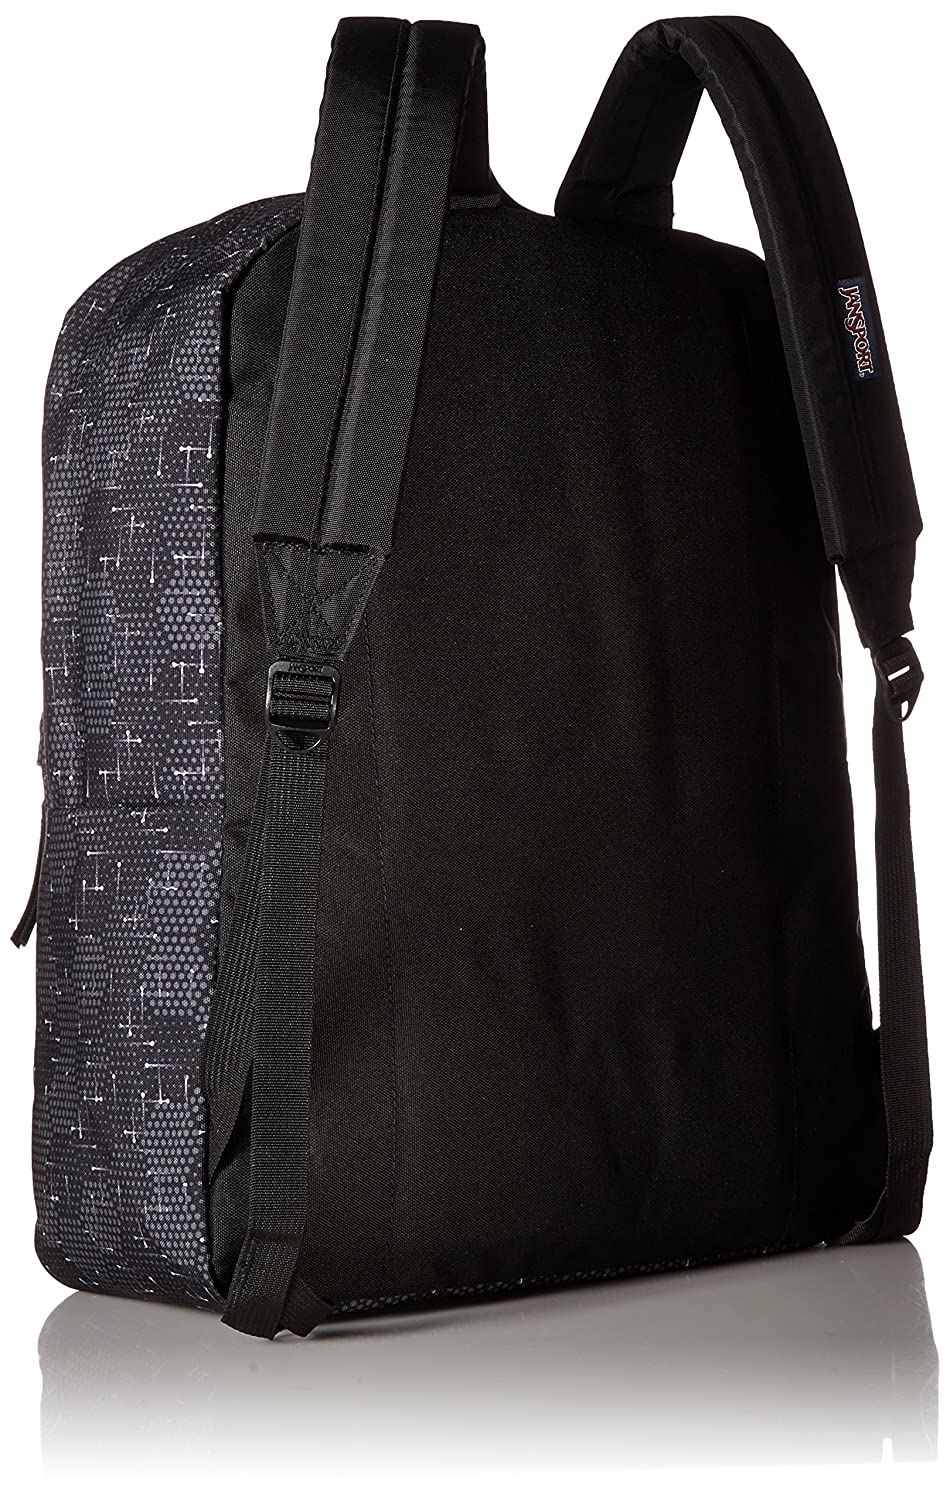 JanSport Unisex SuperBreak Multi Moving Dots Backpack